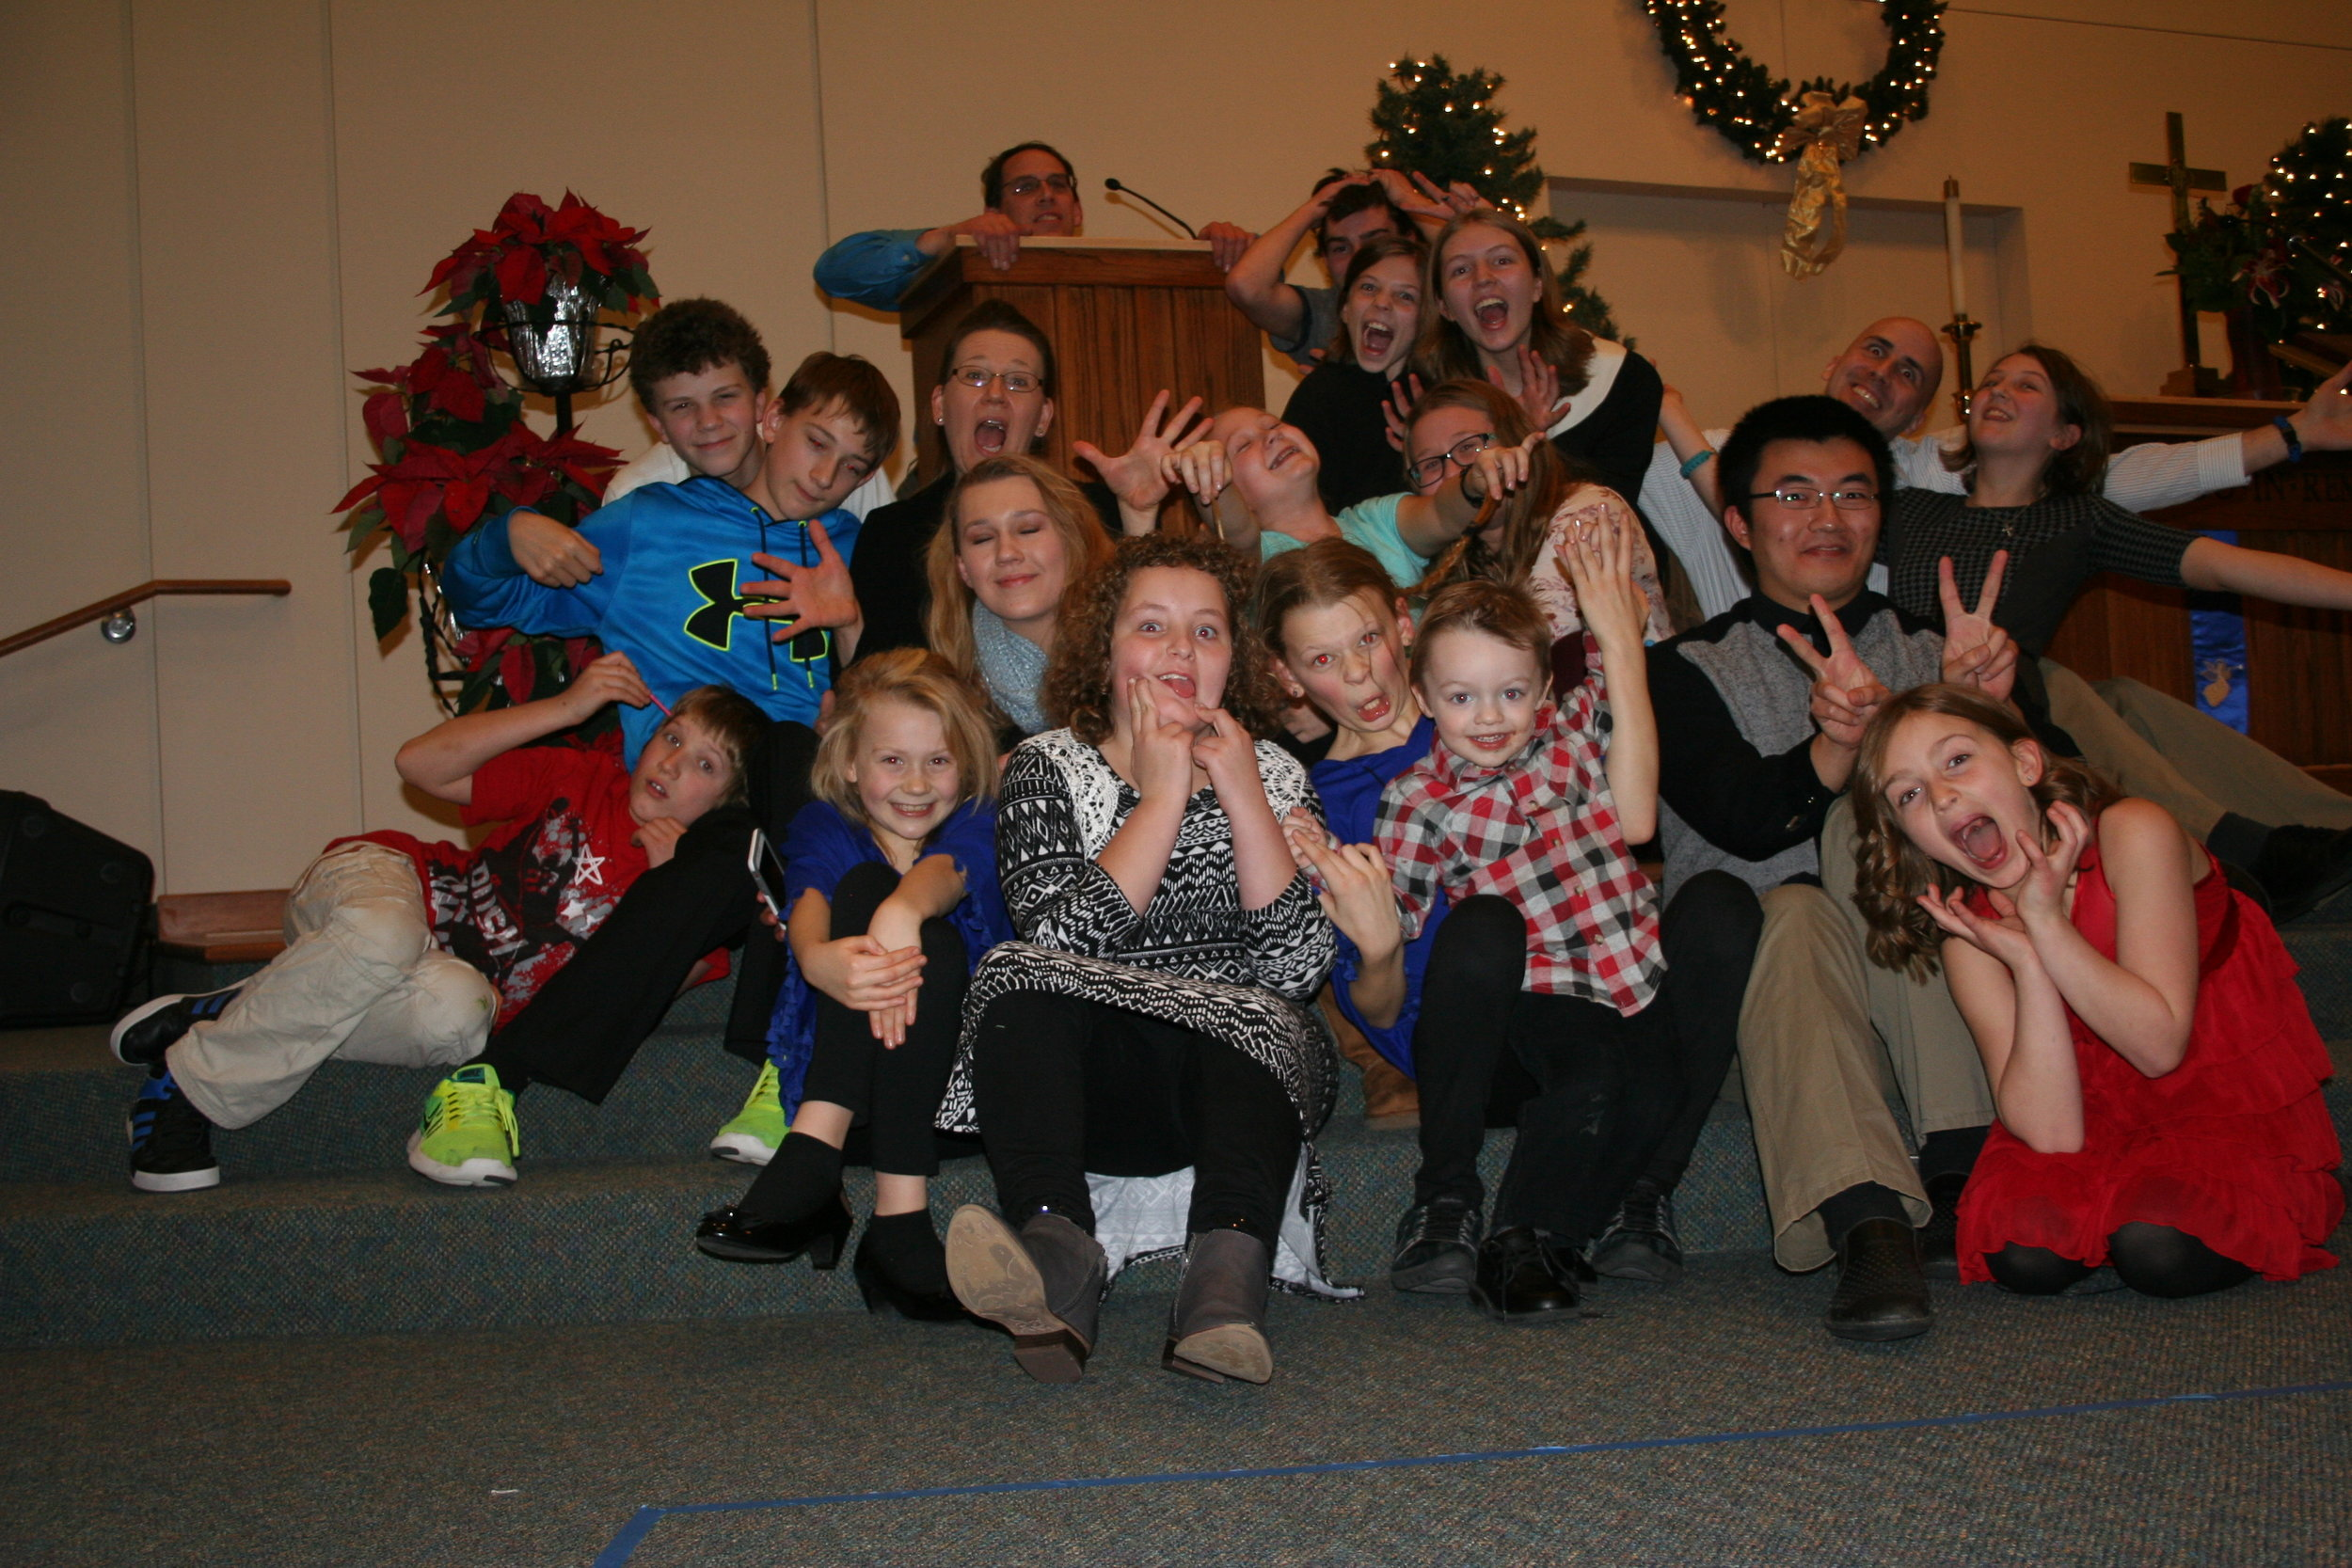 My husband and I with our children and their friends from church, all of whom are near and dear to our hearts.